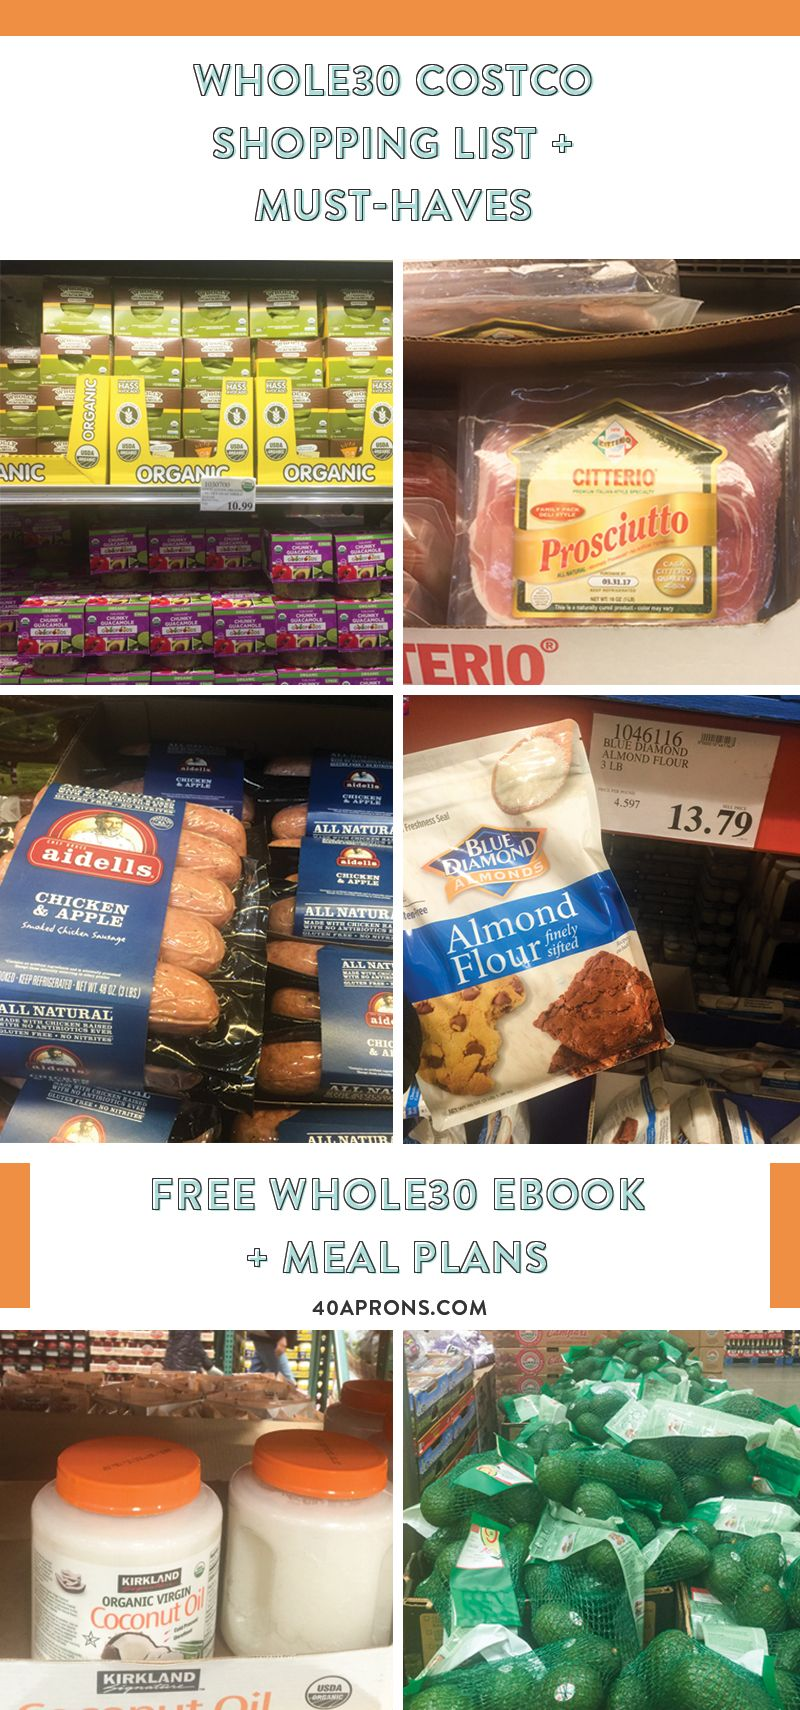 a944e55dcfb Whole30 Costco Shopping List / Must-Haves | Whole30 | Whole 30 ...